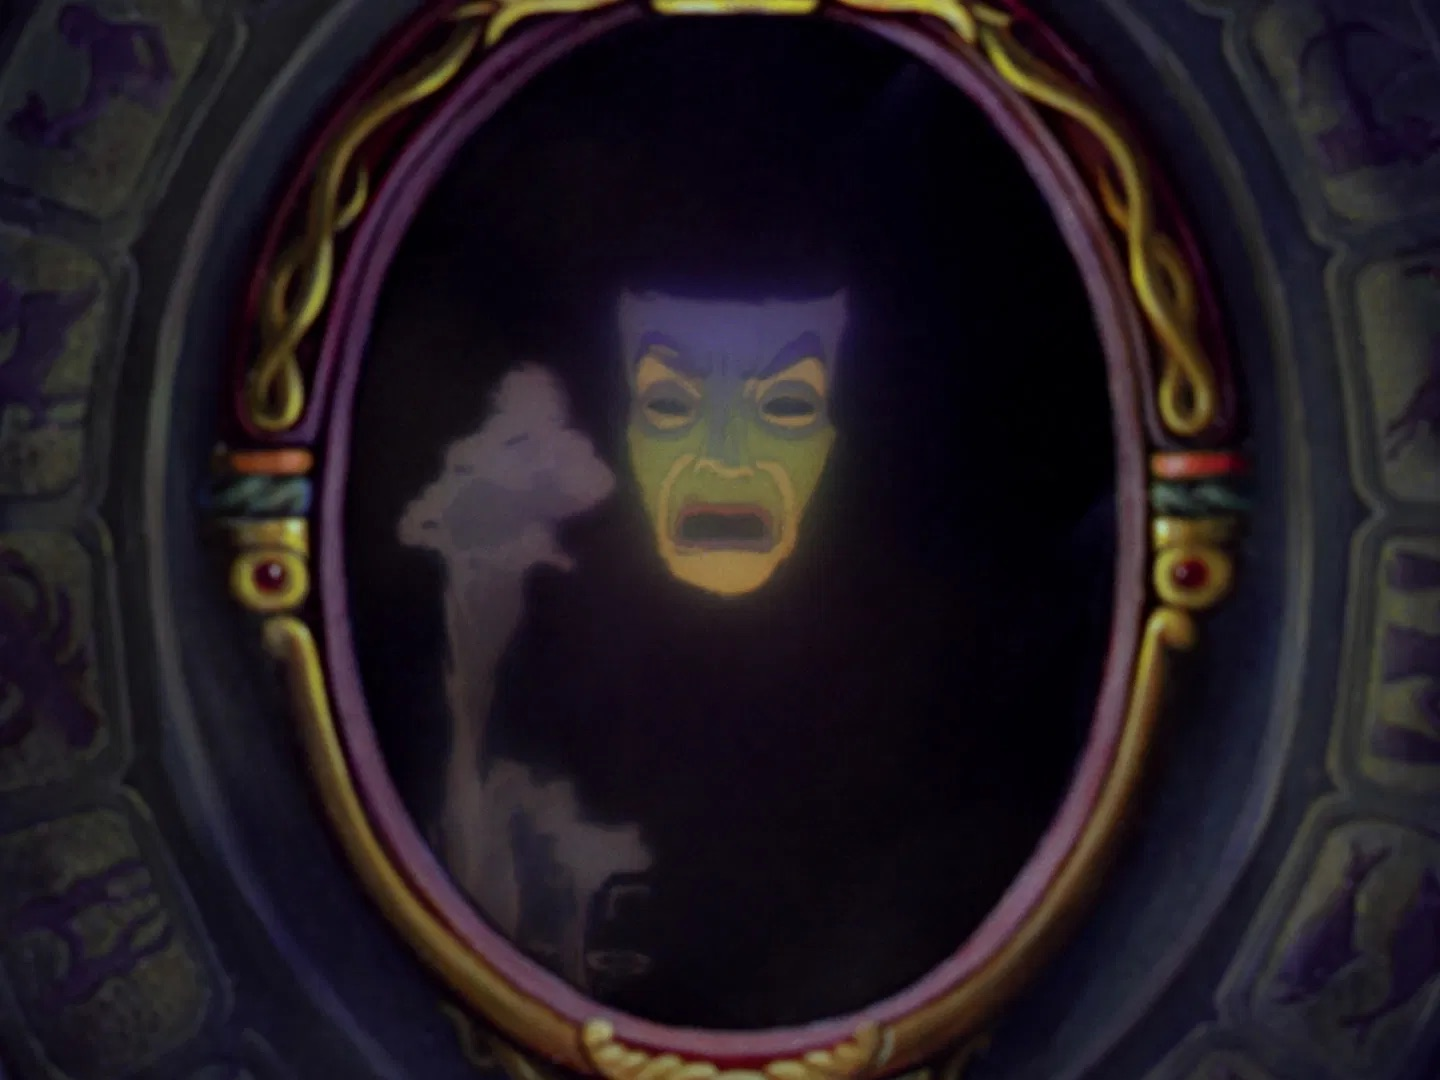 Magic mirror disney wiki fandom powered by wikia for Miroir magique cinema